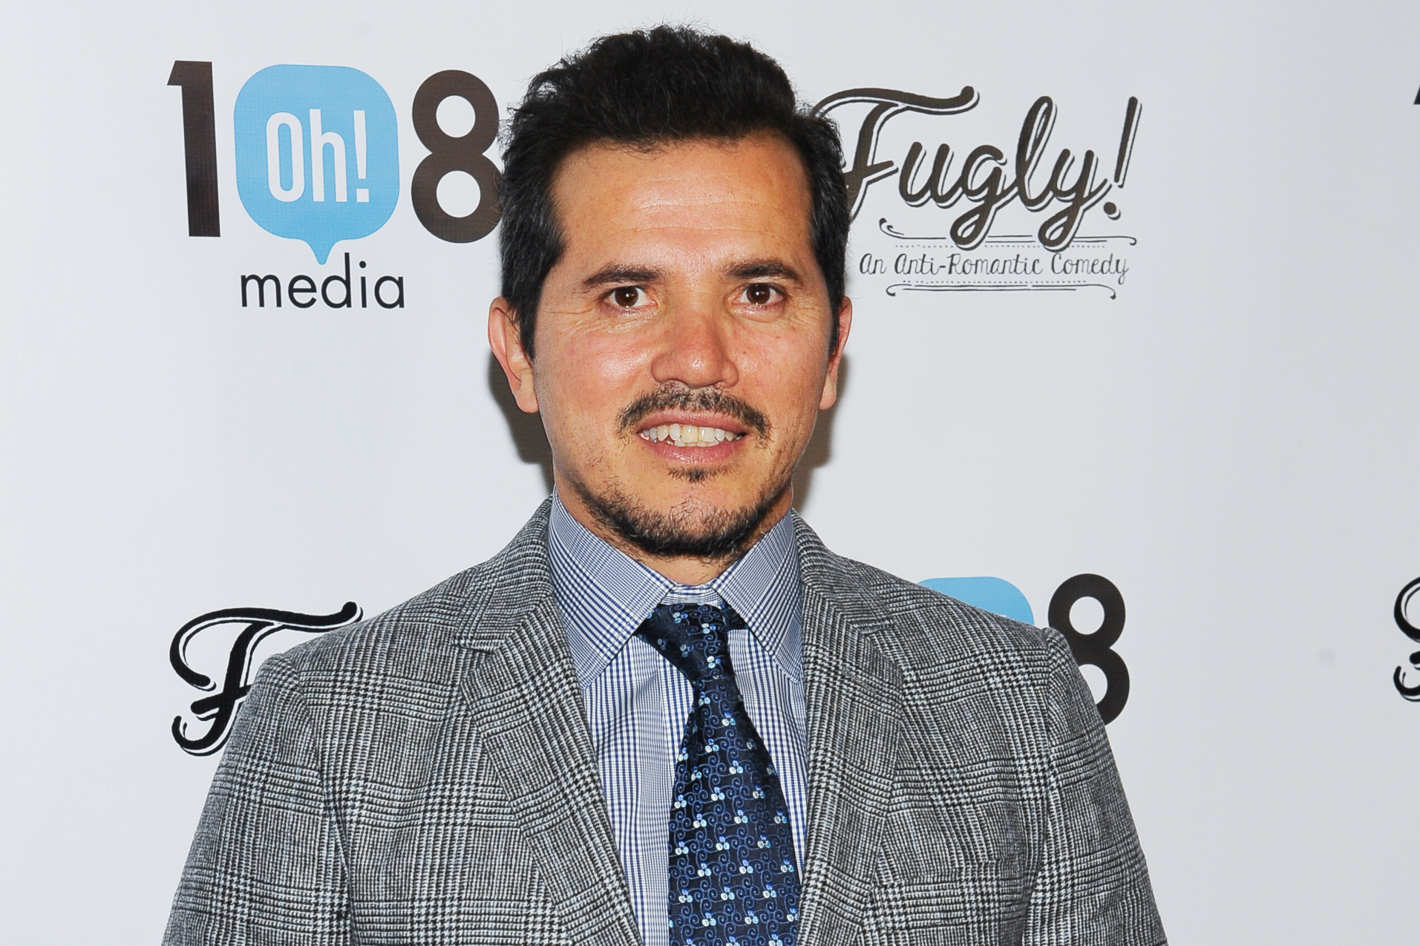 John Leguizamo on His New Movie Fugly! and Torturing His Kids With ...